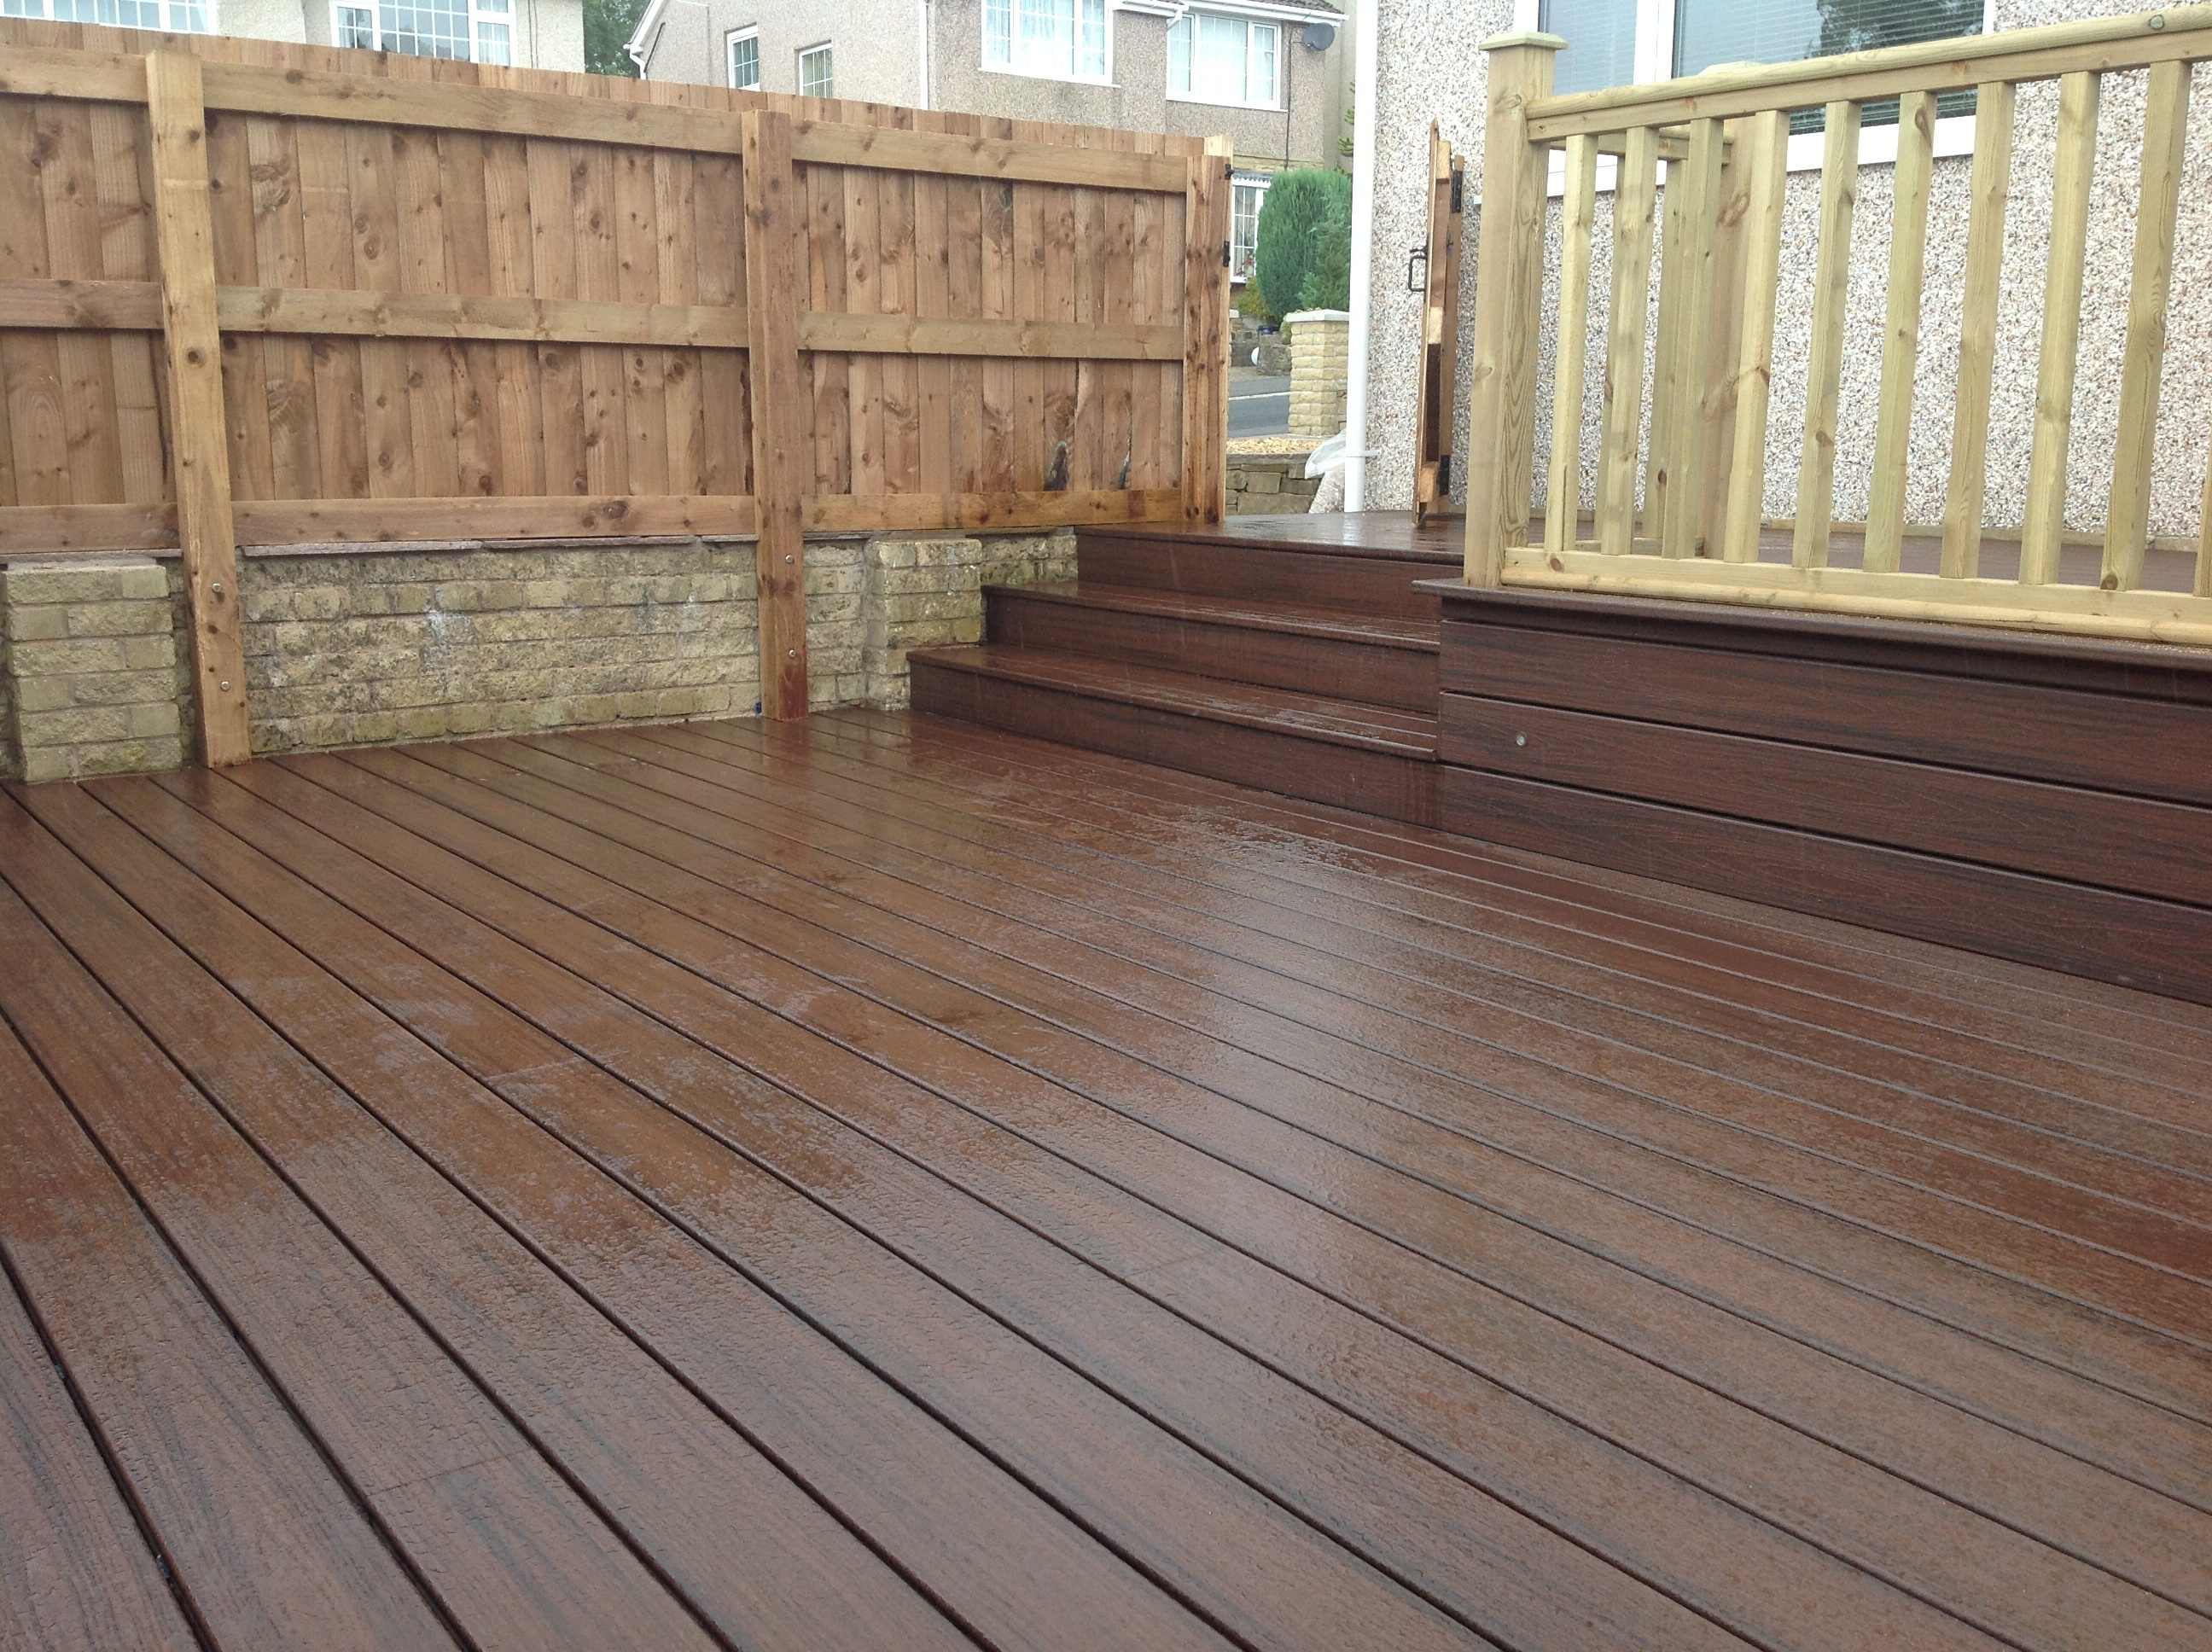 Decking gardens kevin hiley construction for Garden decking images uk